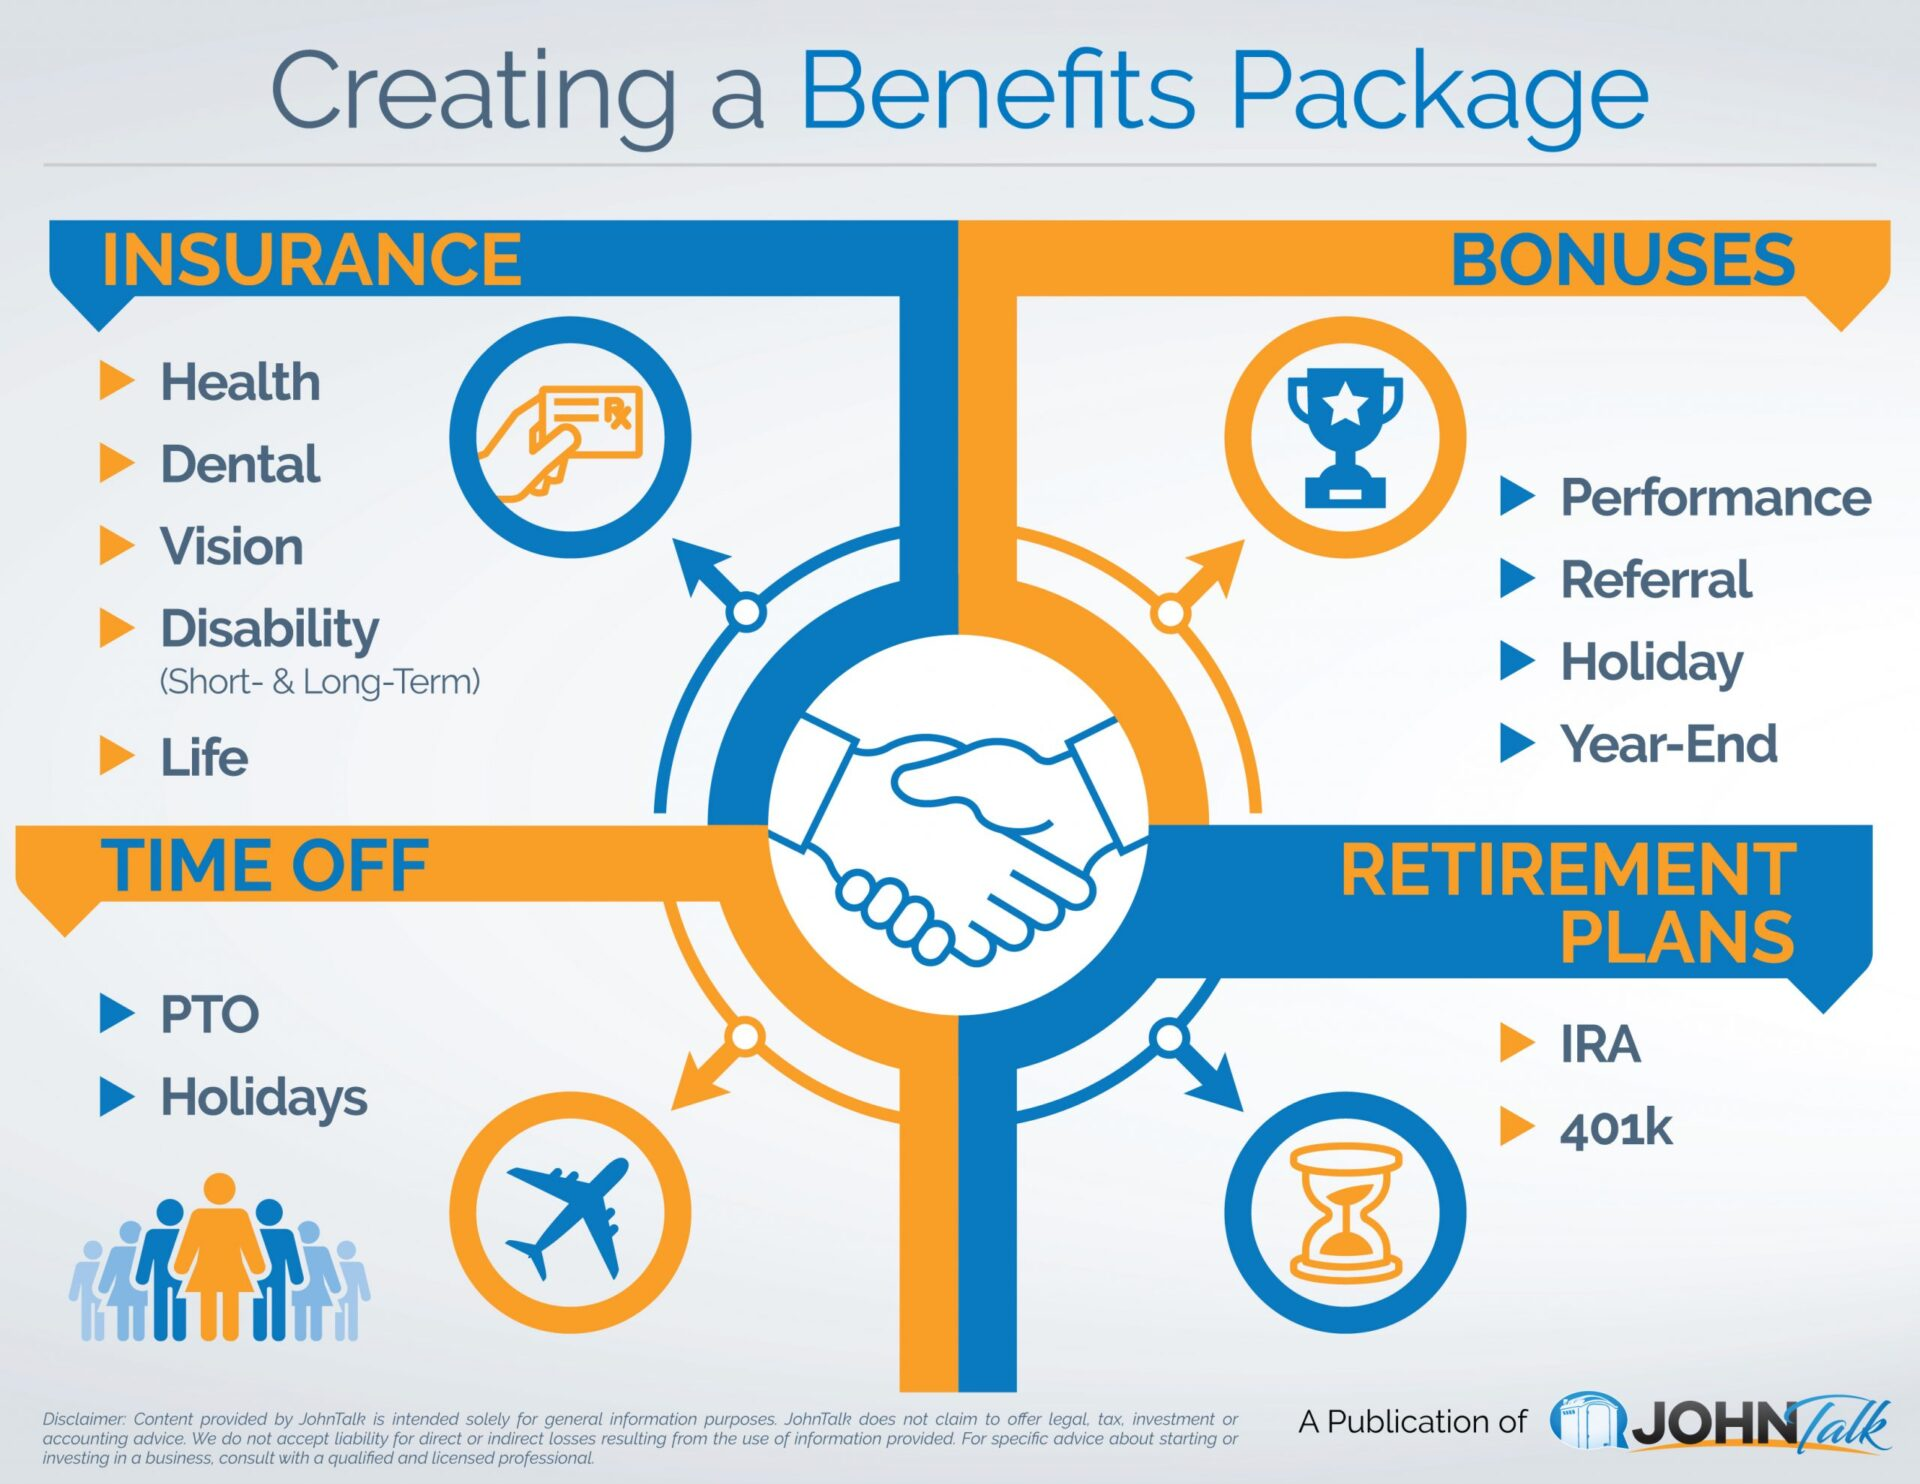 Creating a Benefits Package